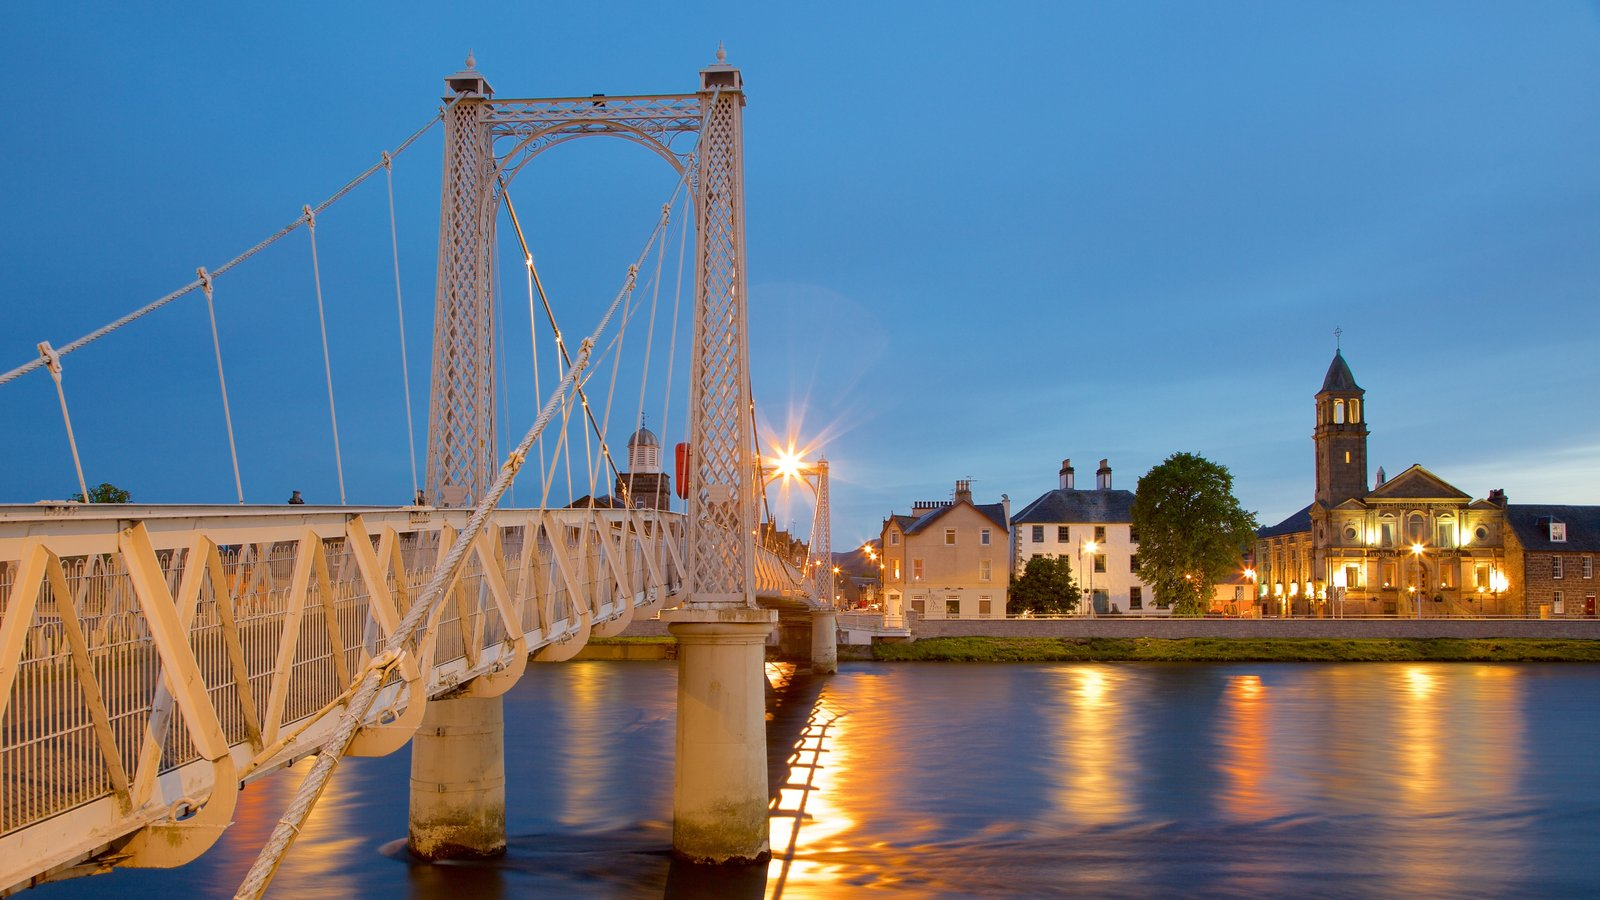 Inverness showing a river or creek, night scenes and a bridge